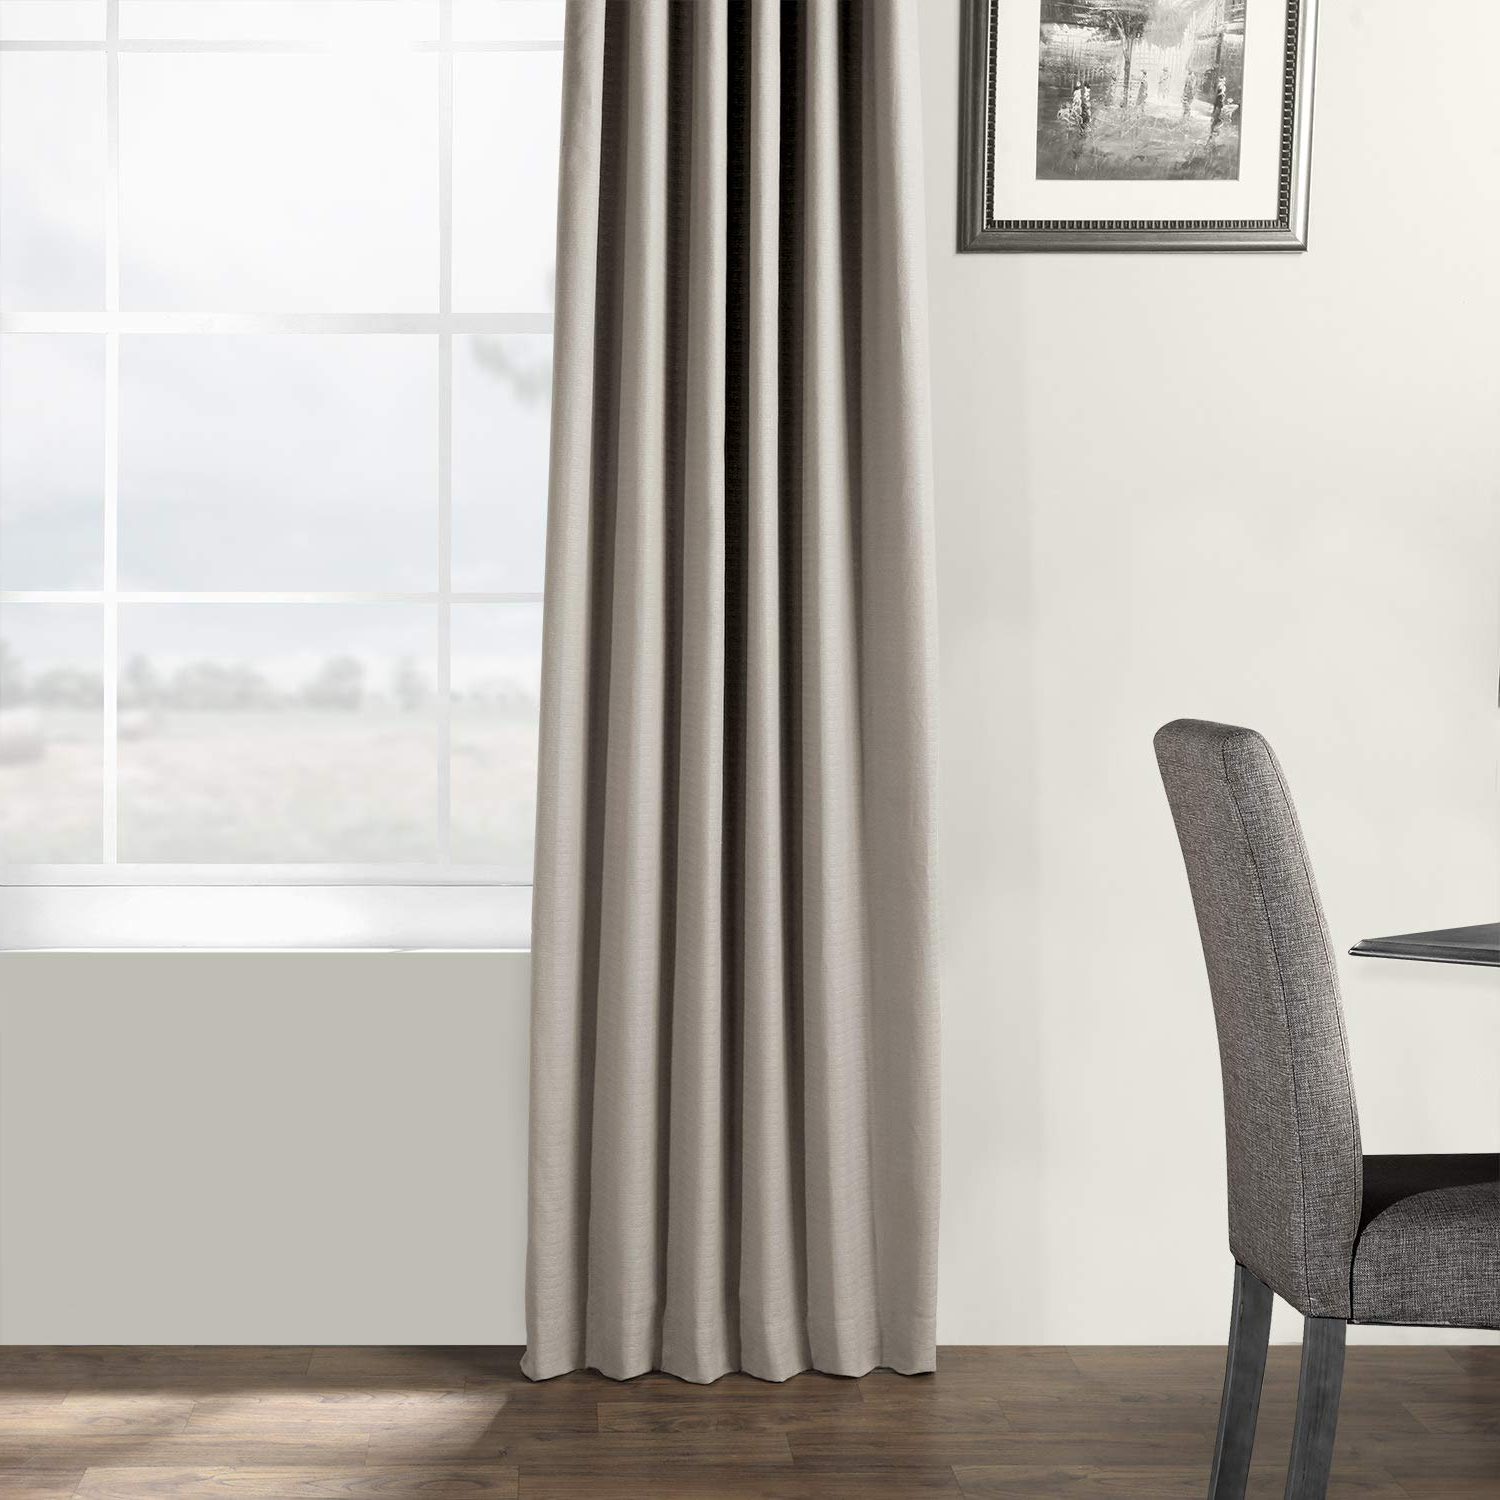 Recent Hpd Half Price Drapes Bark Weave Solid Cotton Curtain, Stardust Grey (grey) With Regard To Bark Weave Solid Cotton Curtains (View 5 of 20)